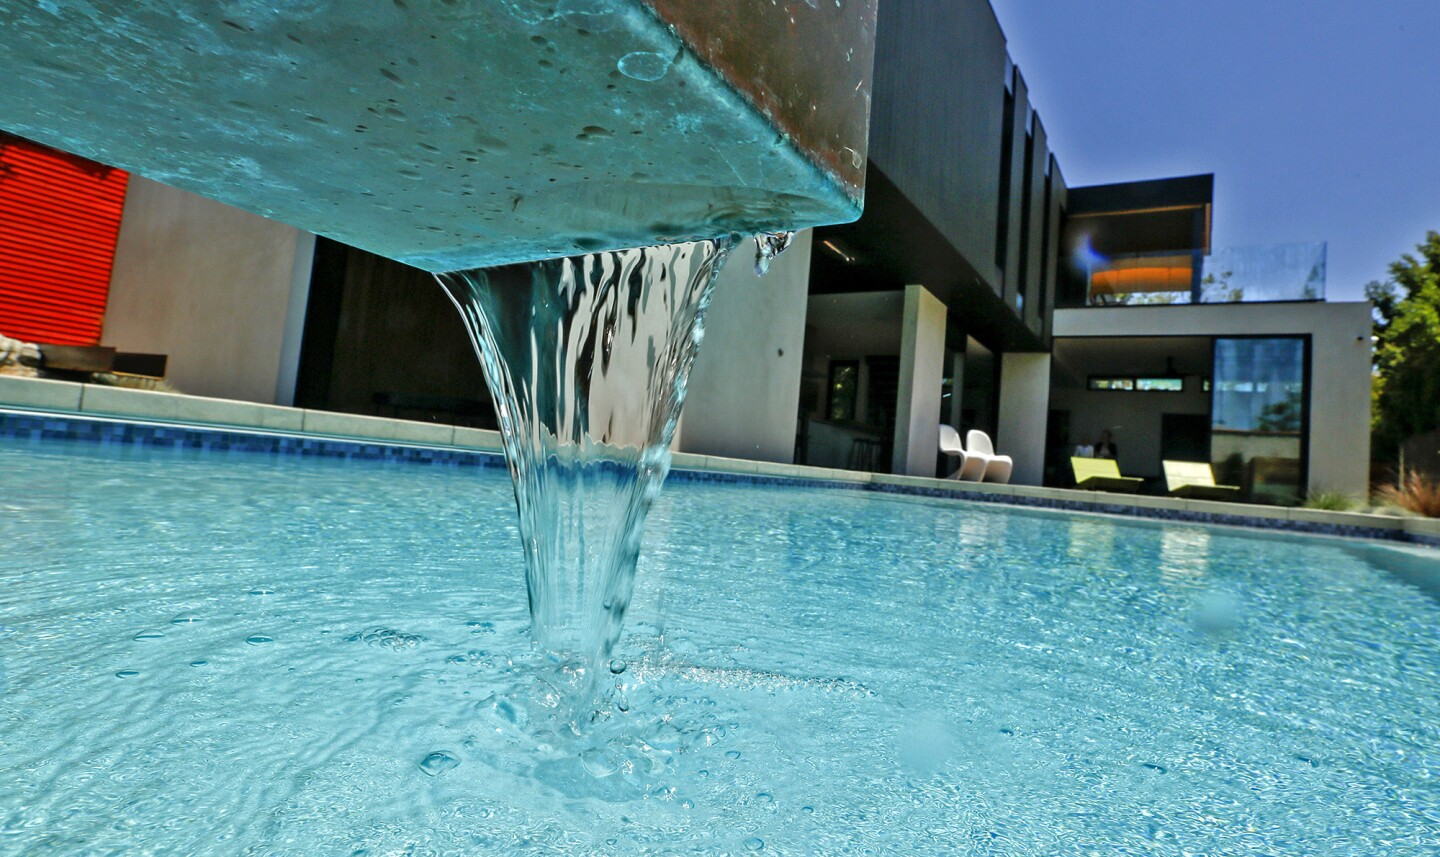 Hot Property | In an era of drought-tolerant everything, pools still boost an L.A. home's value